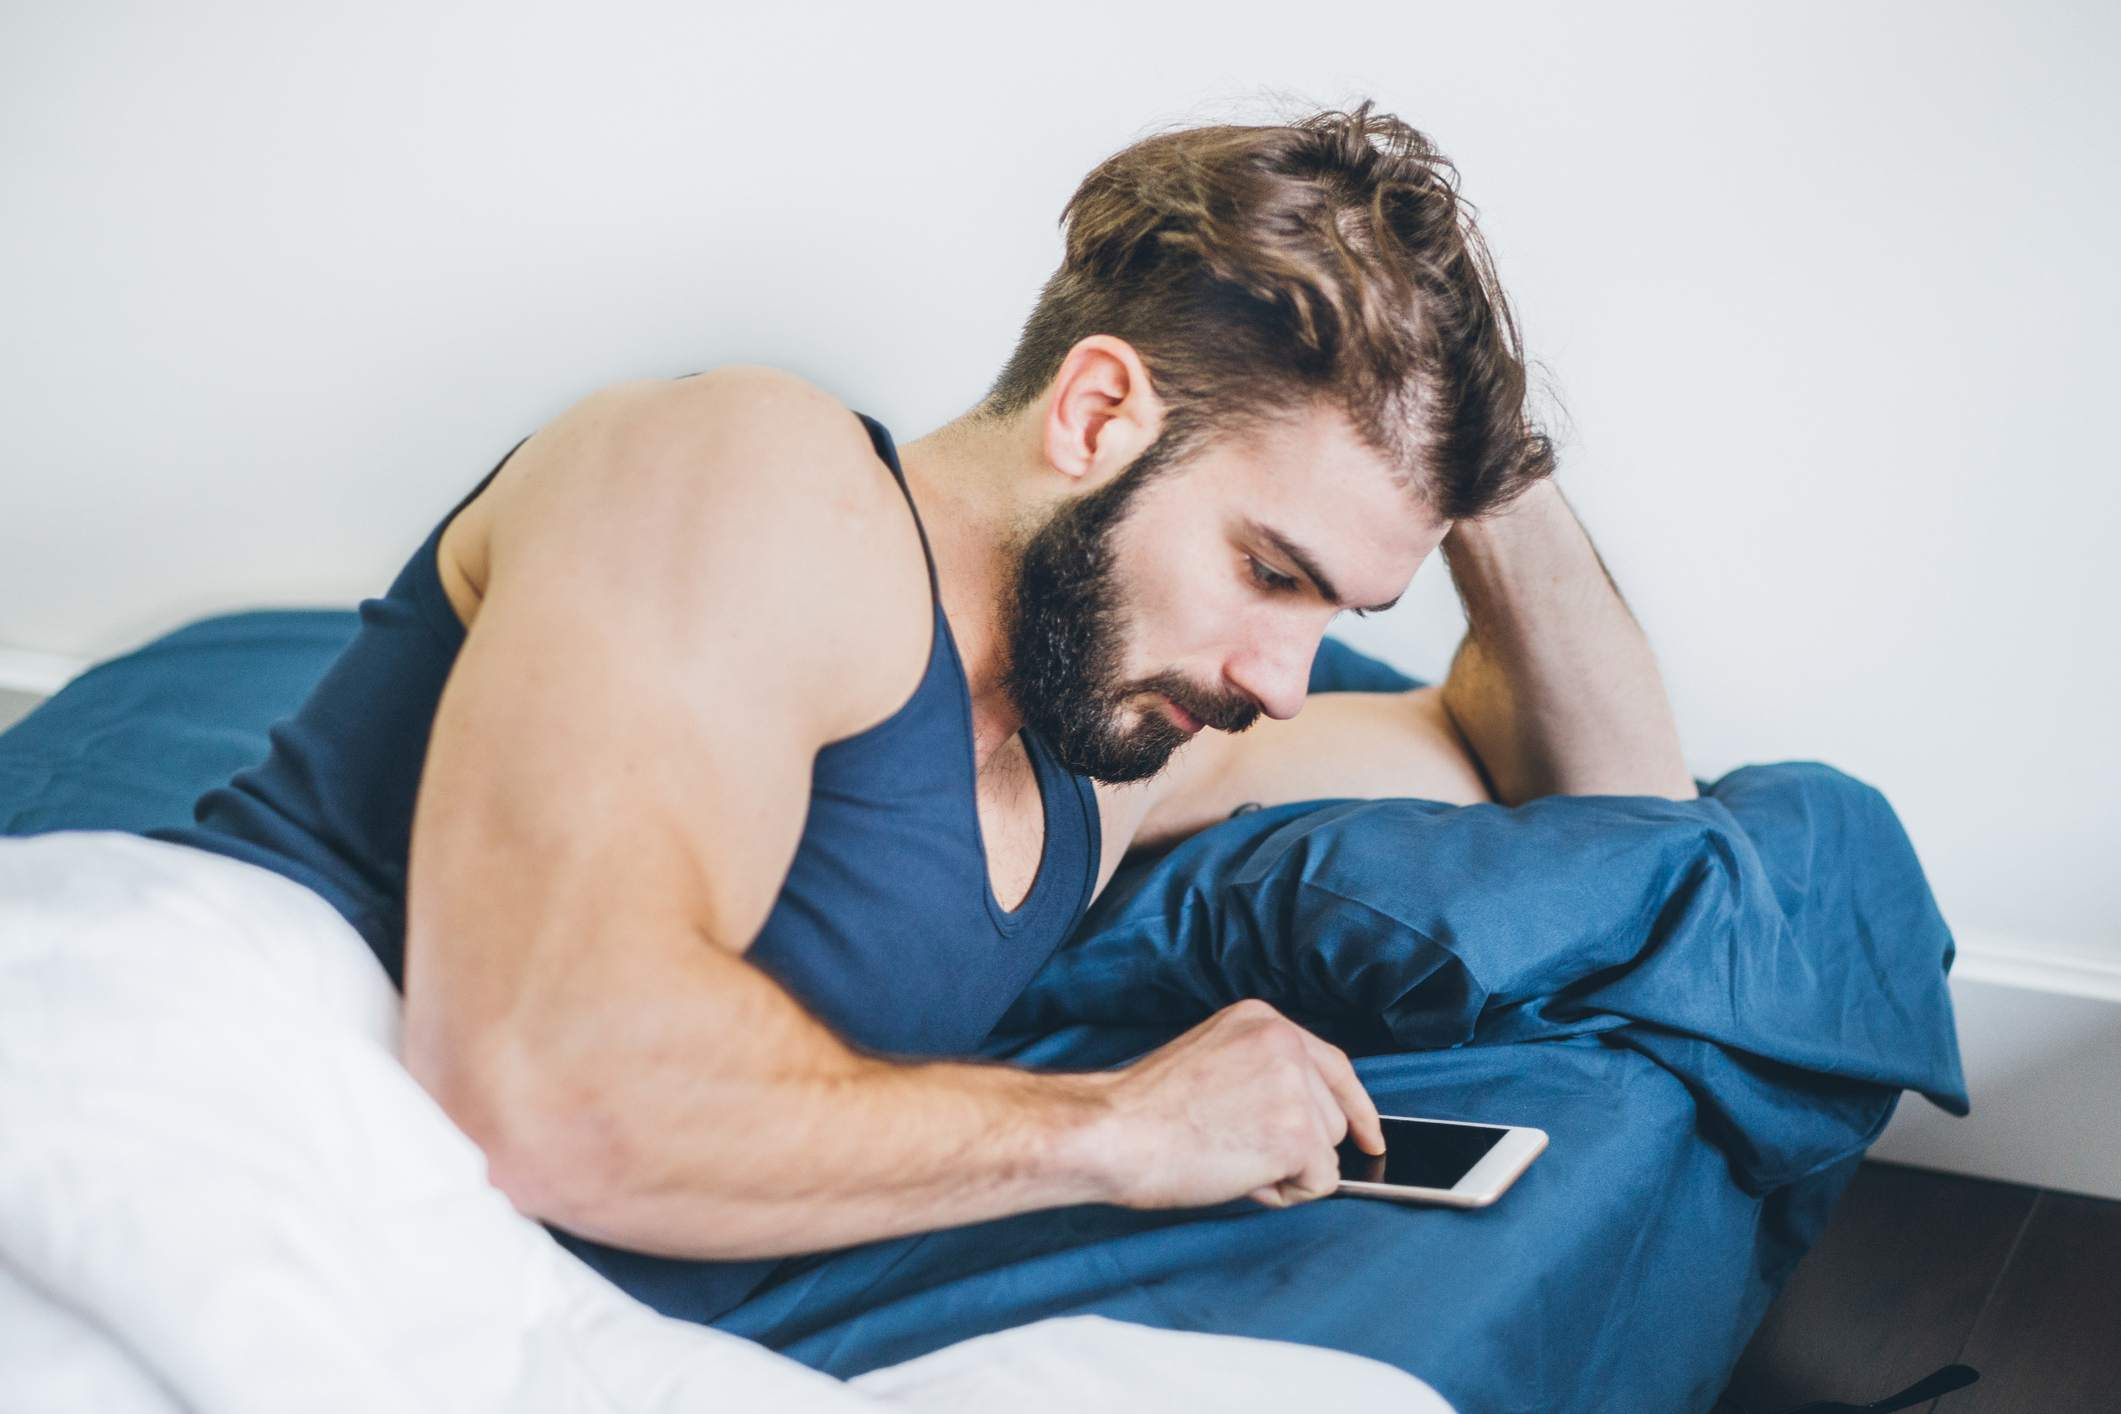 Man in bed texting on phone